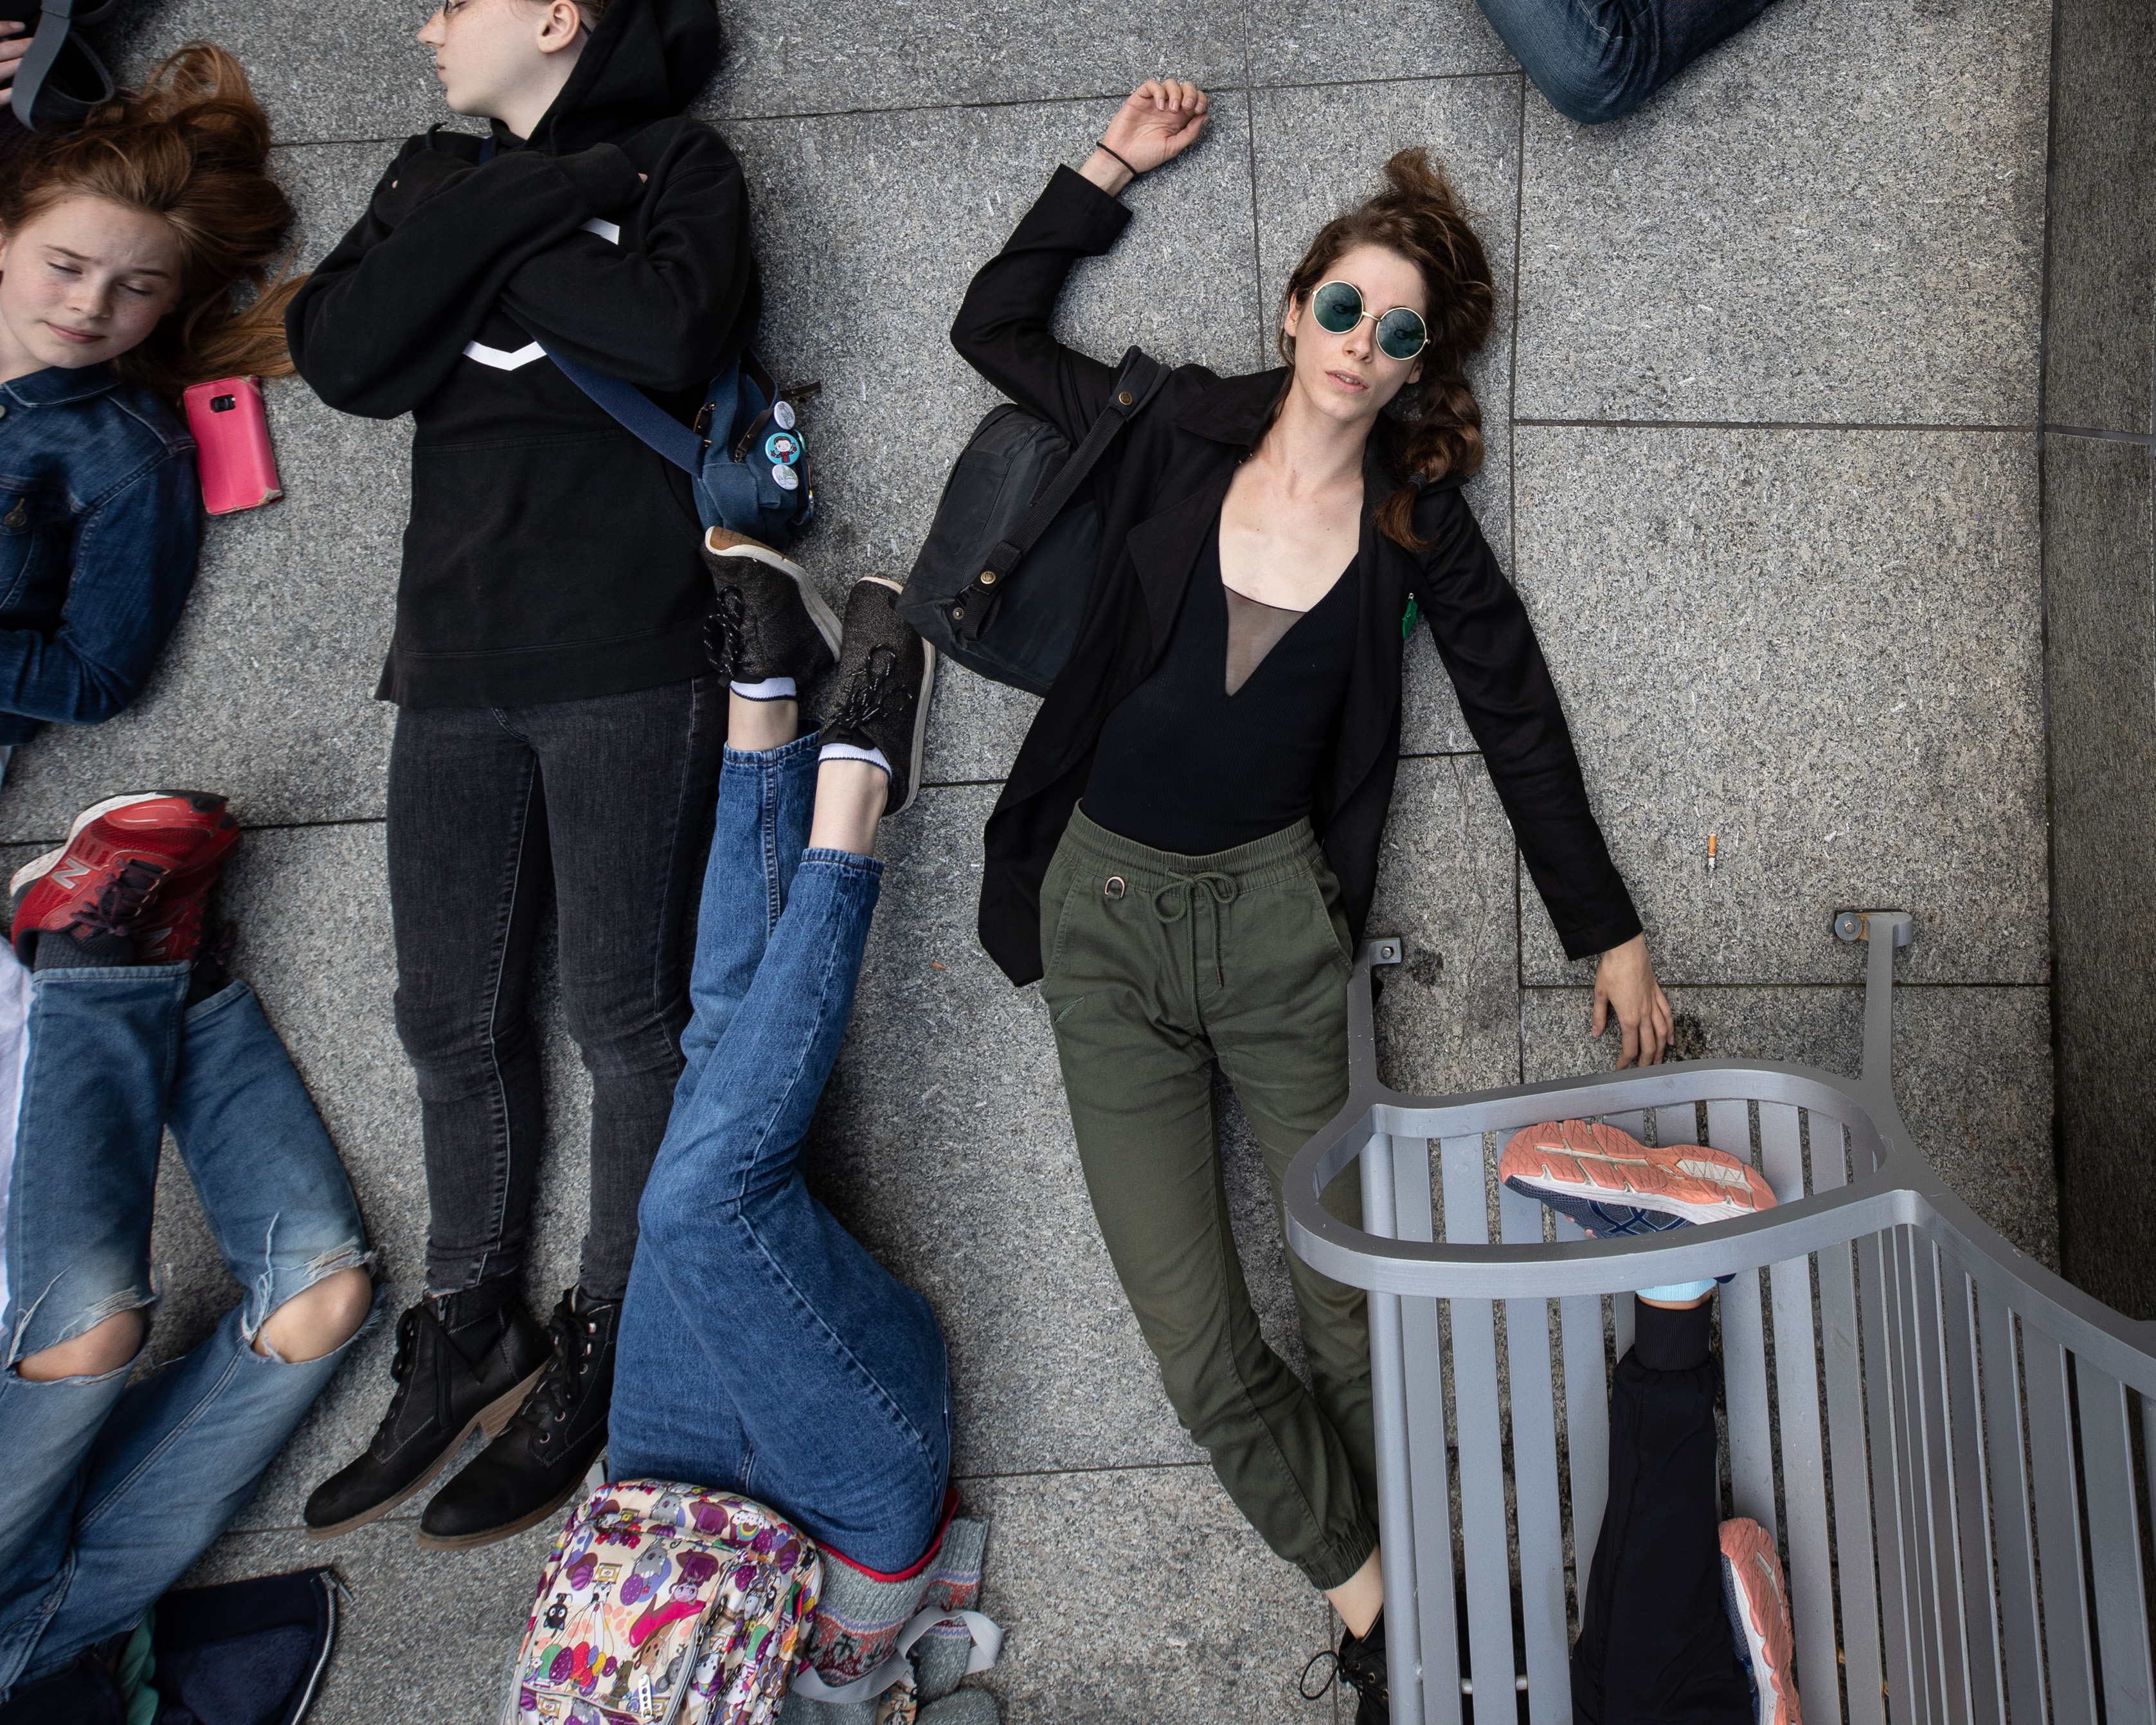 Climate activists perform a die-in outside the Teck Resources building on Sept. 20, 2019. (Maggie MacPherson/CBC)